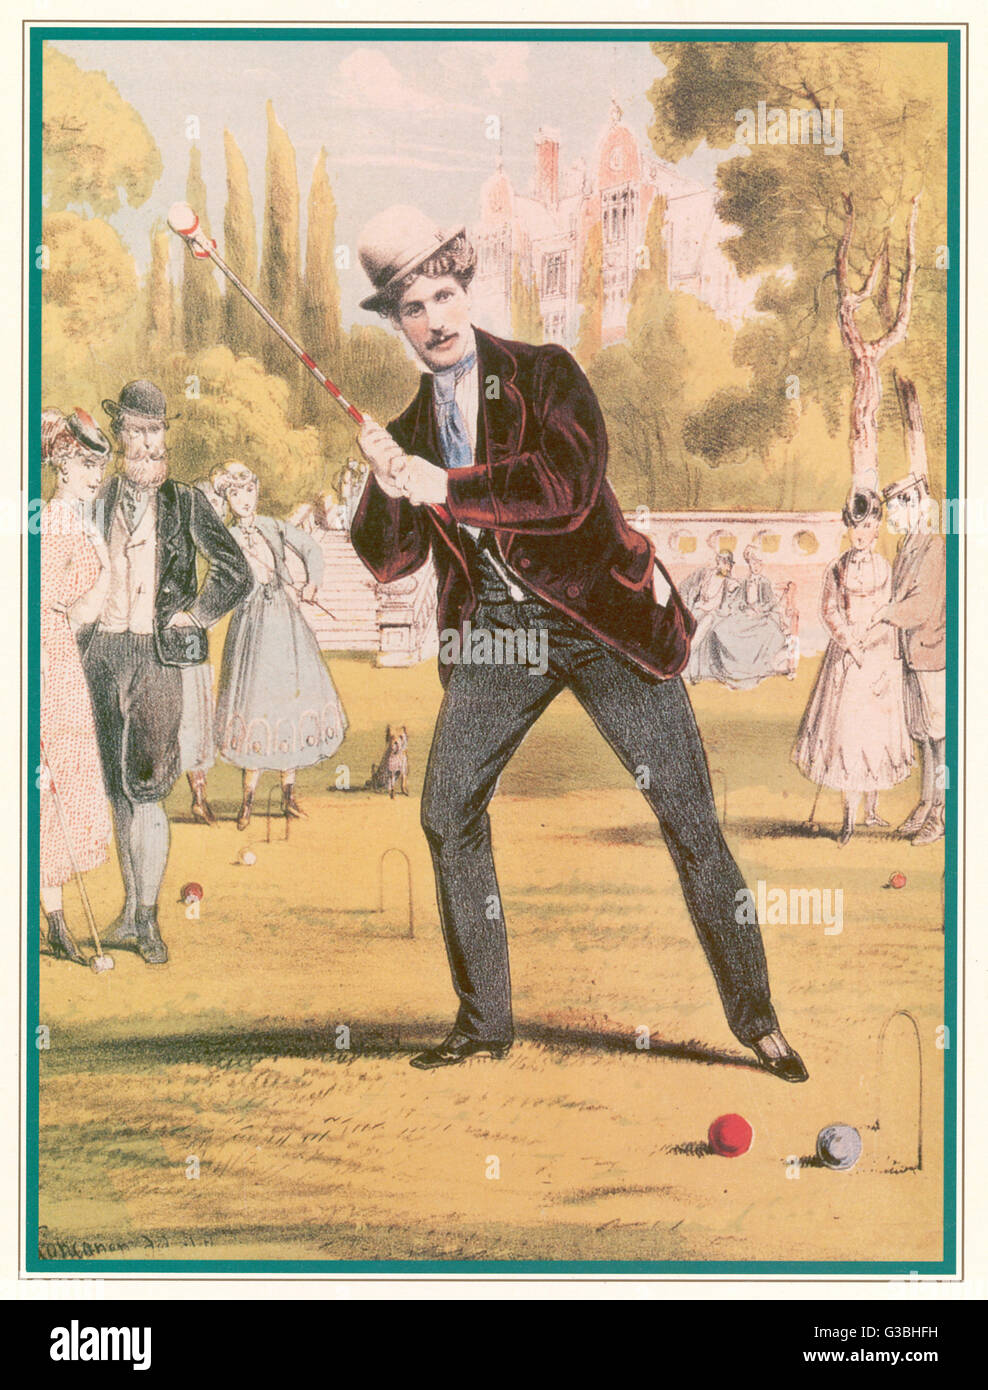 A redoubtable croquet-player  ponders a tricky shot -  how to get his own ball  through the hoop without  taking - Stock Image